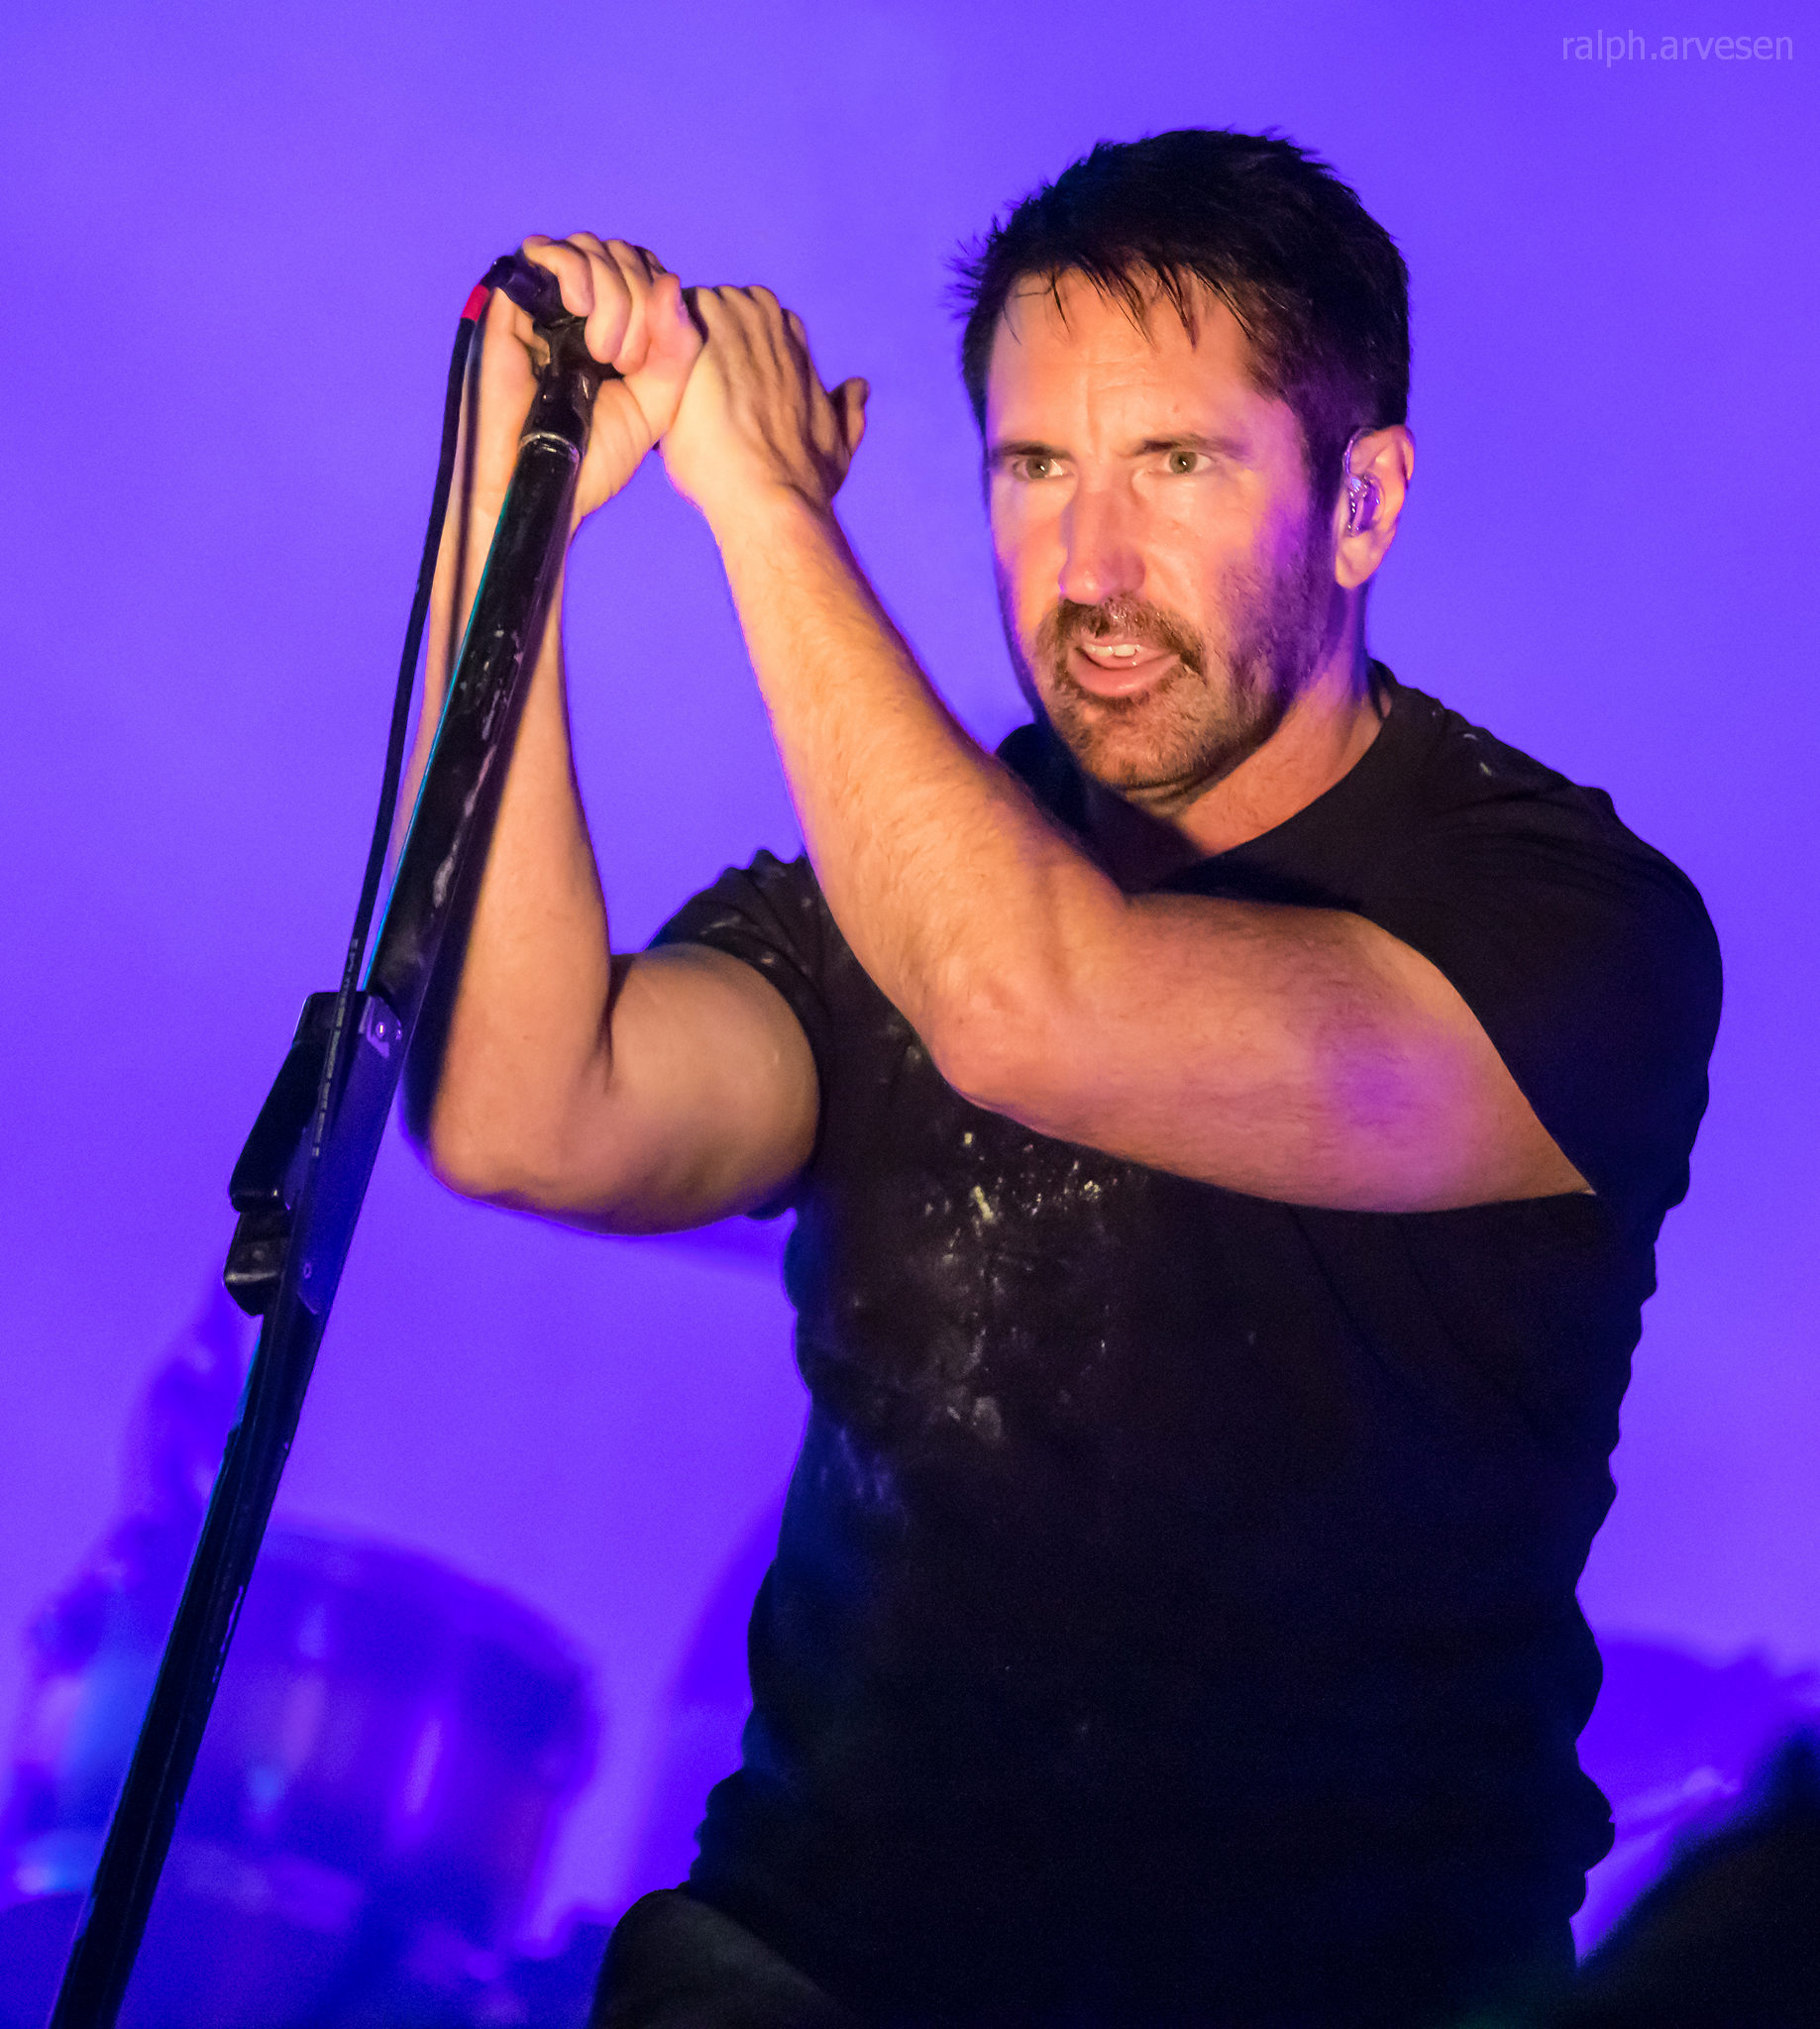 River City Rockfest 2018 - Nine Inch Nails (7)